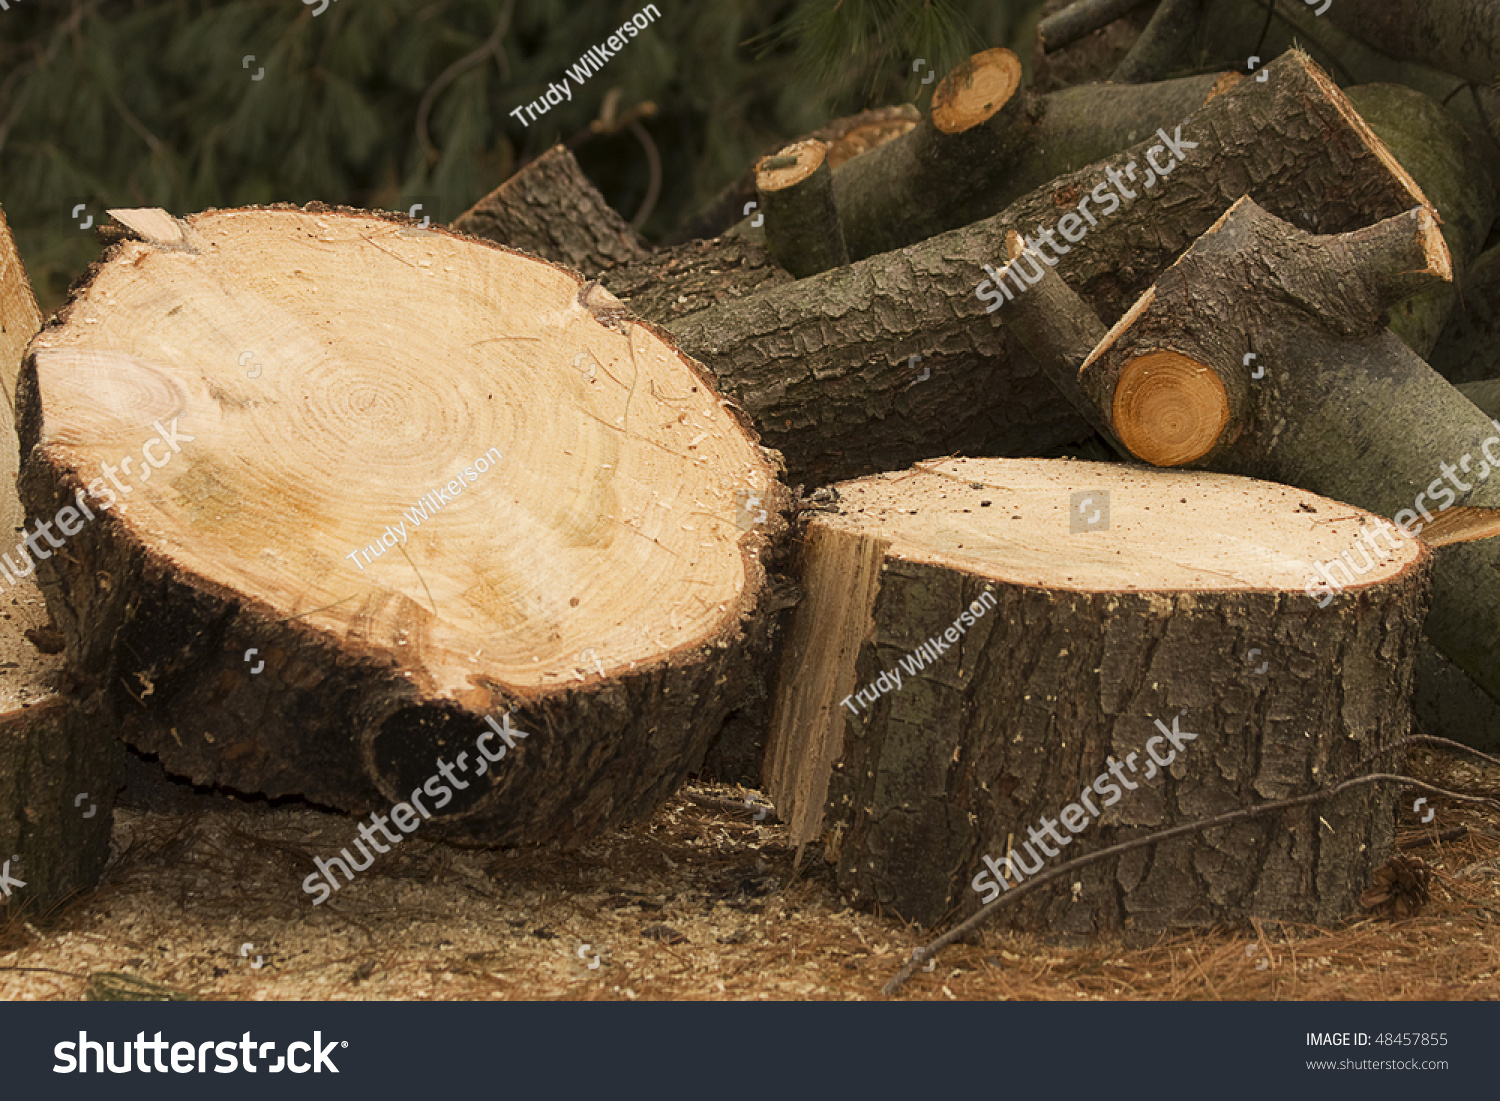 how to cut down a large tree